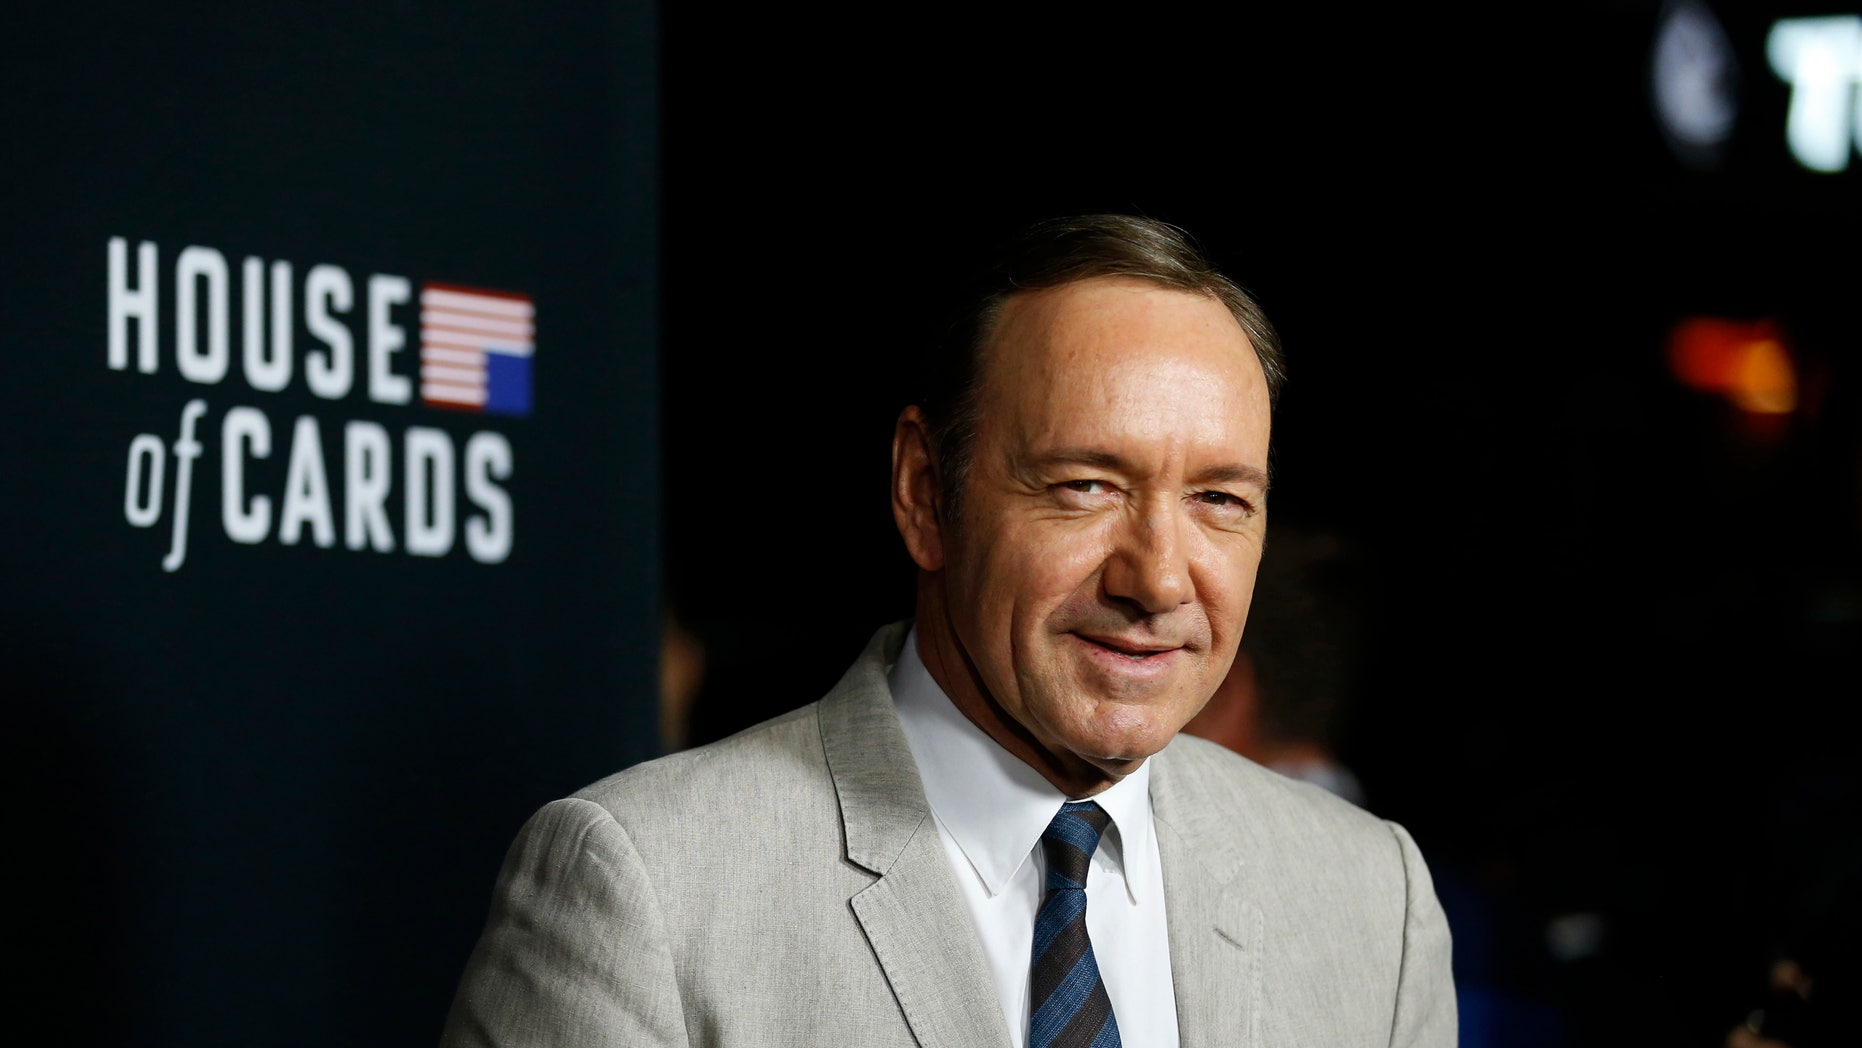 """February 13, 2014. Cast member Kevin Spacey poses at the premiere for the second season of the television series """"House of Cards"""" in Los Angeles."""